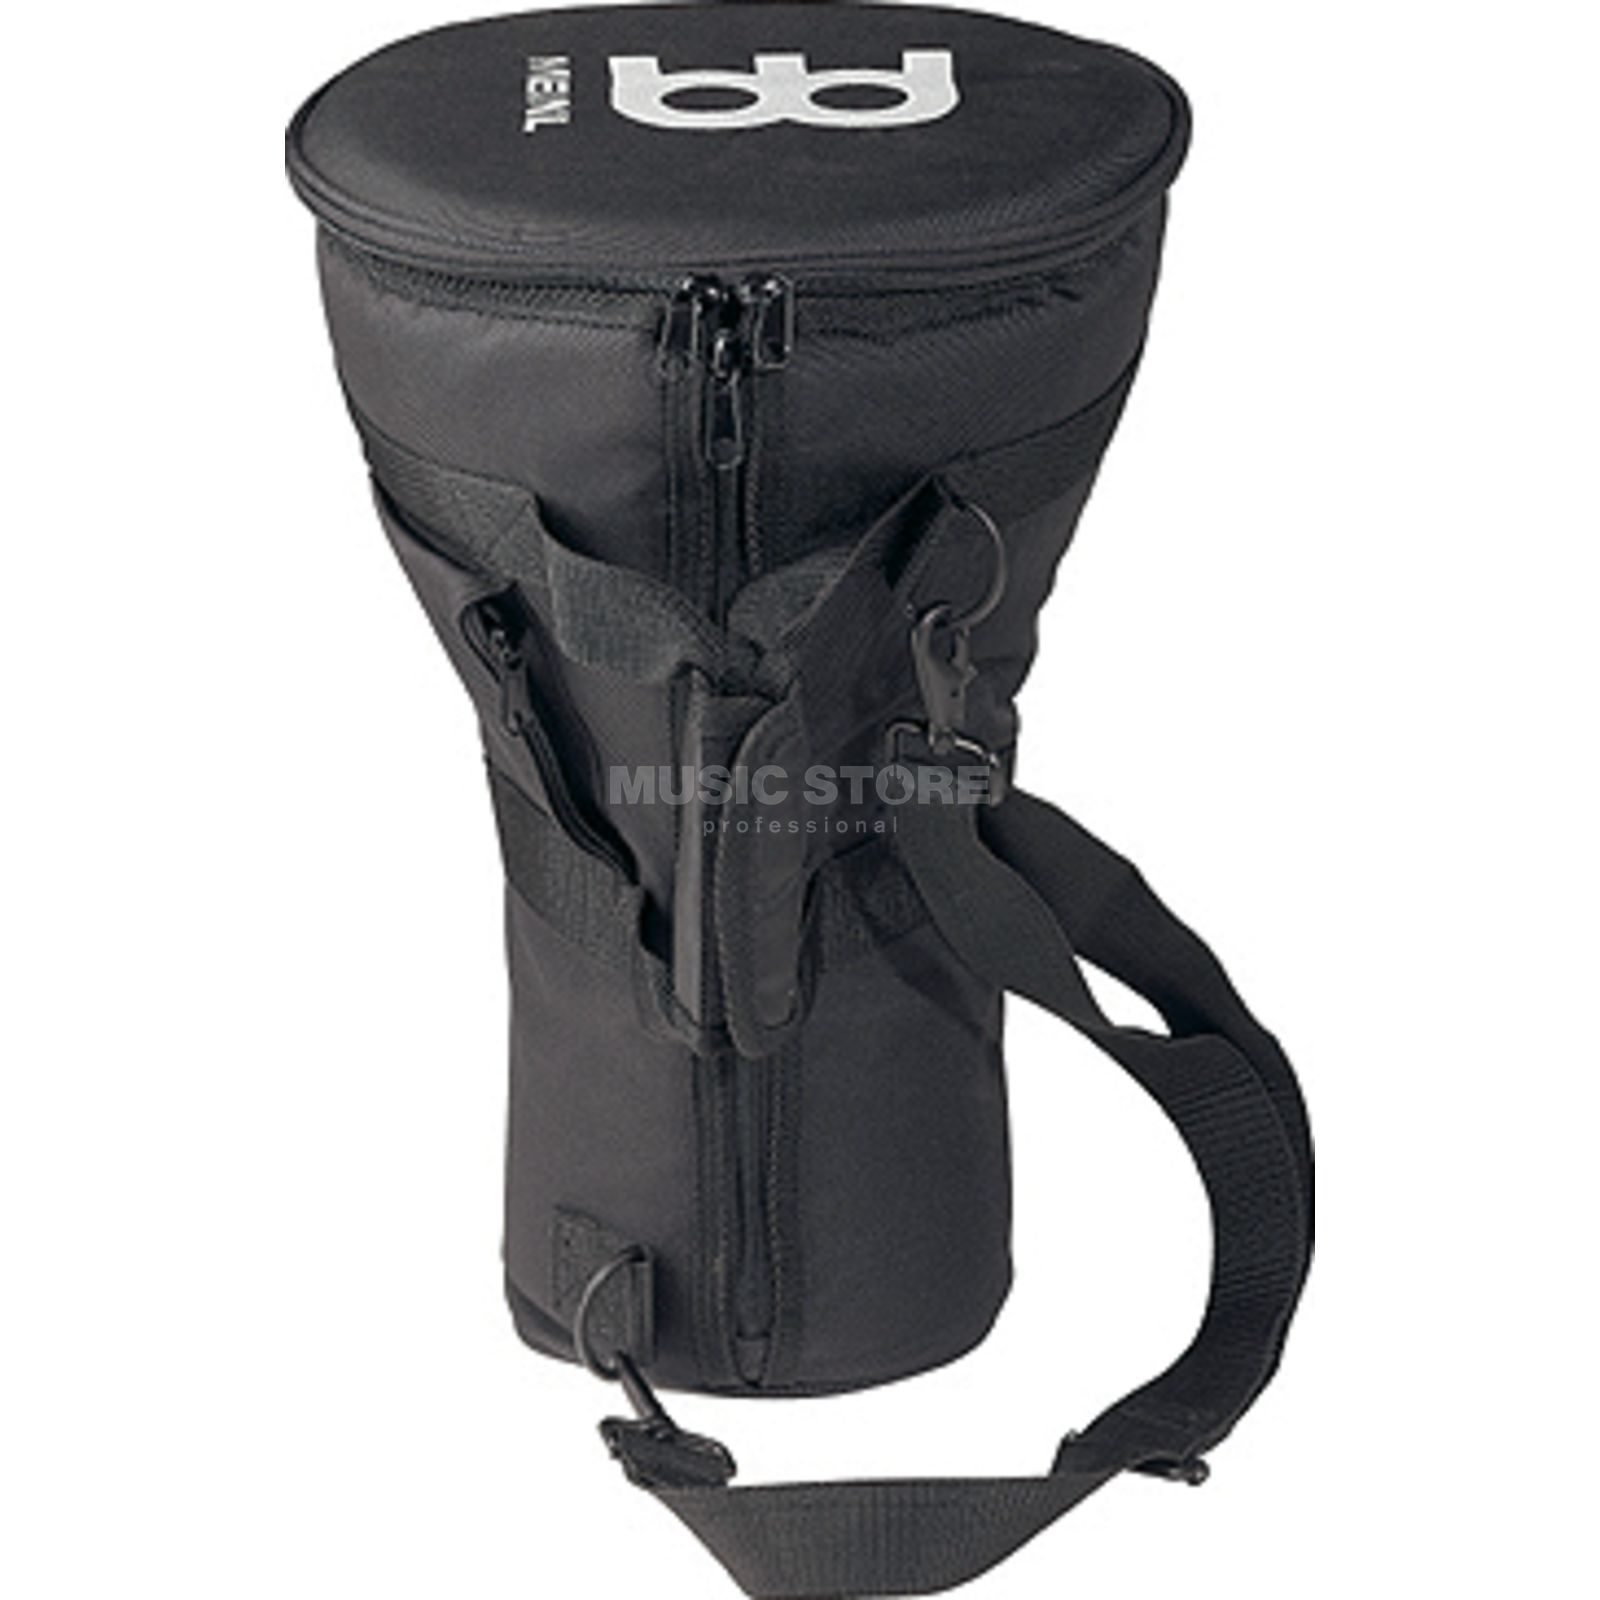 Meinl Djembe Bag MDJB-L, large Product Image